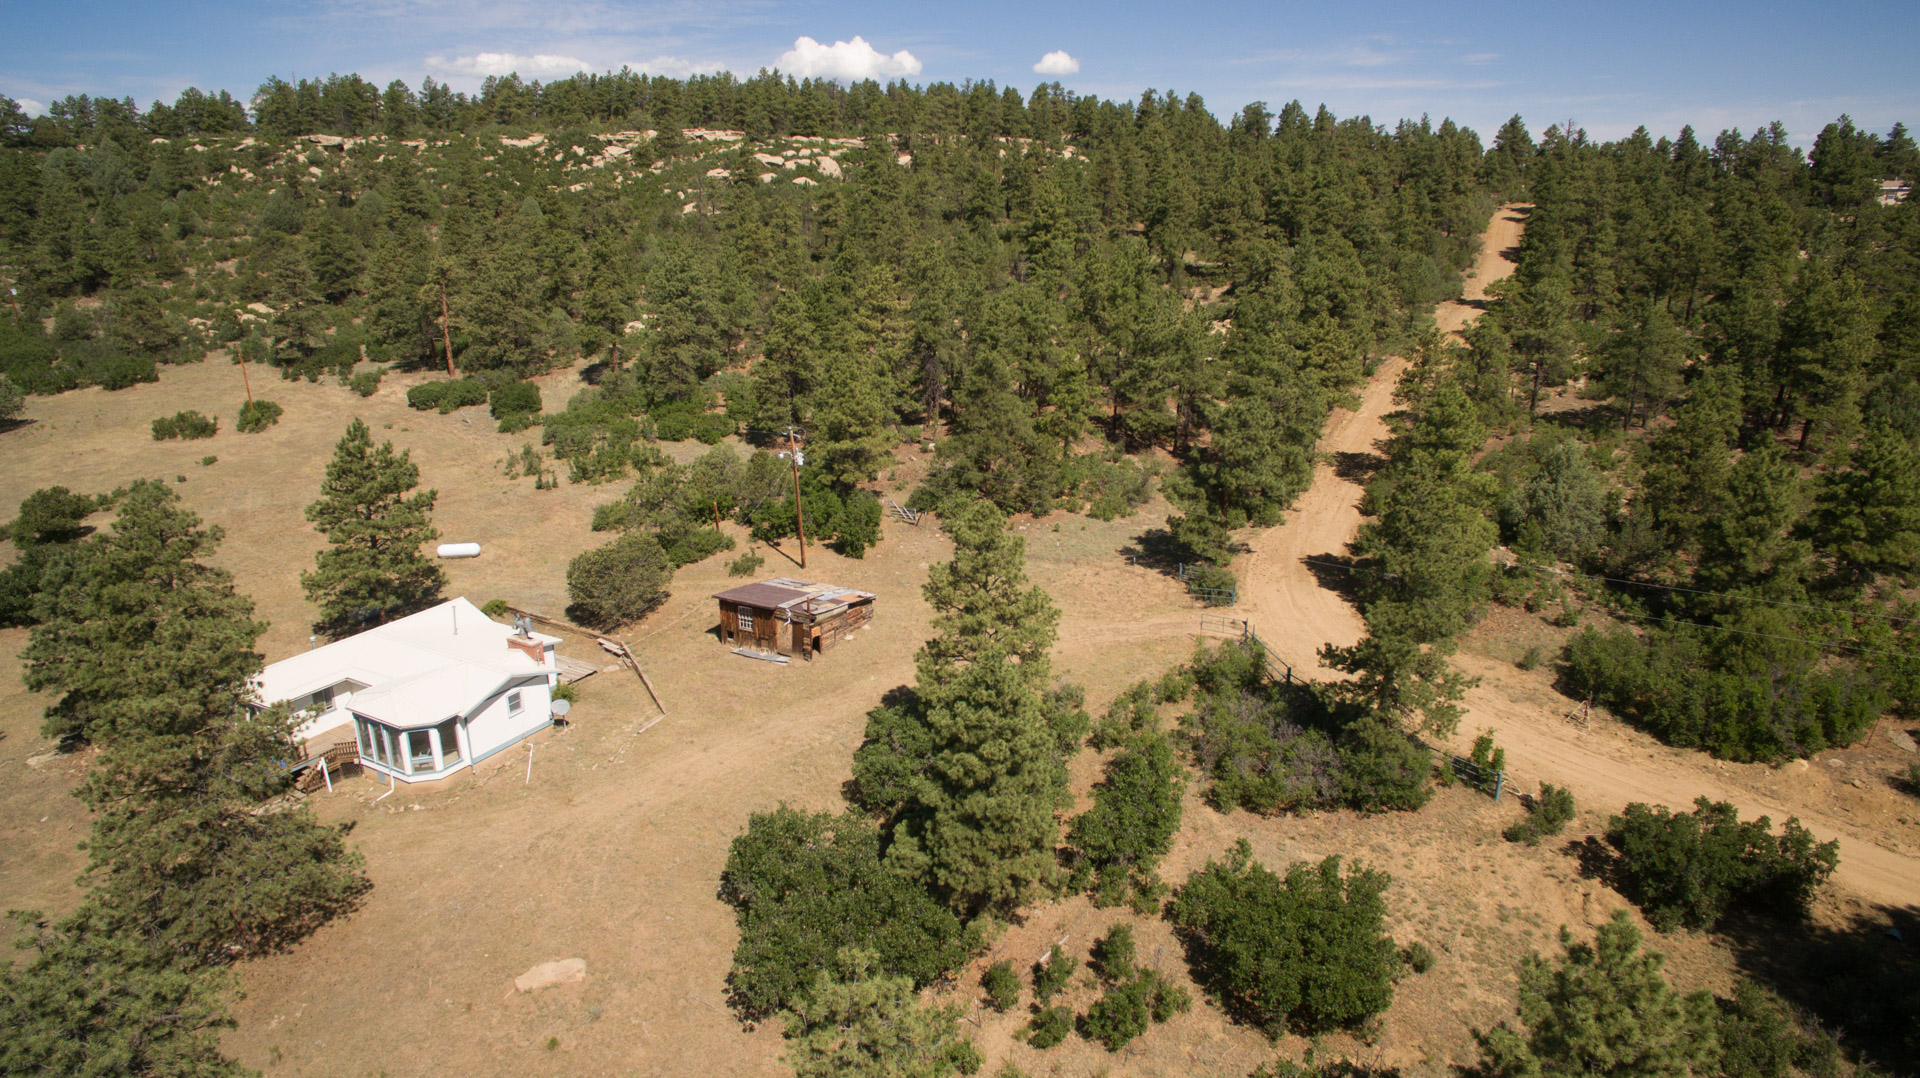 Home & cabins on a neighboring property at the base of the ridge